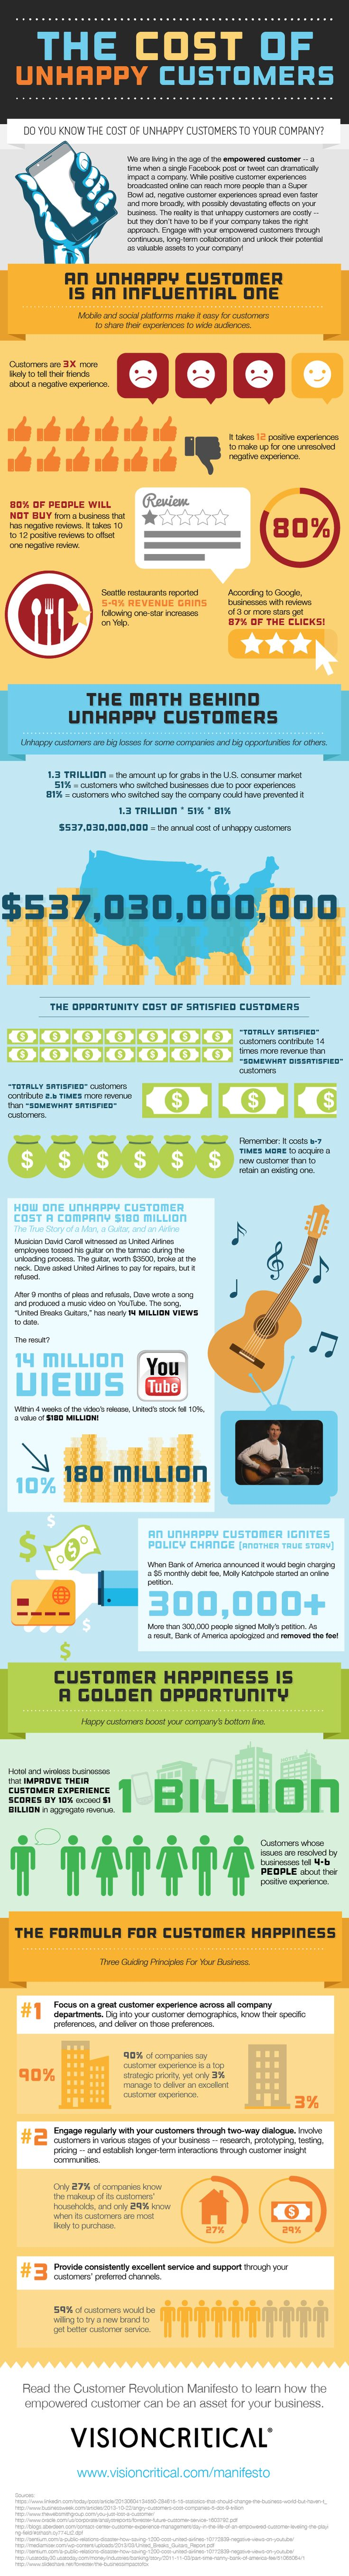 The Cost of Unhappy Customers #infographic #Business #Marketing #UnhappyCustomer